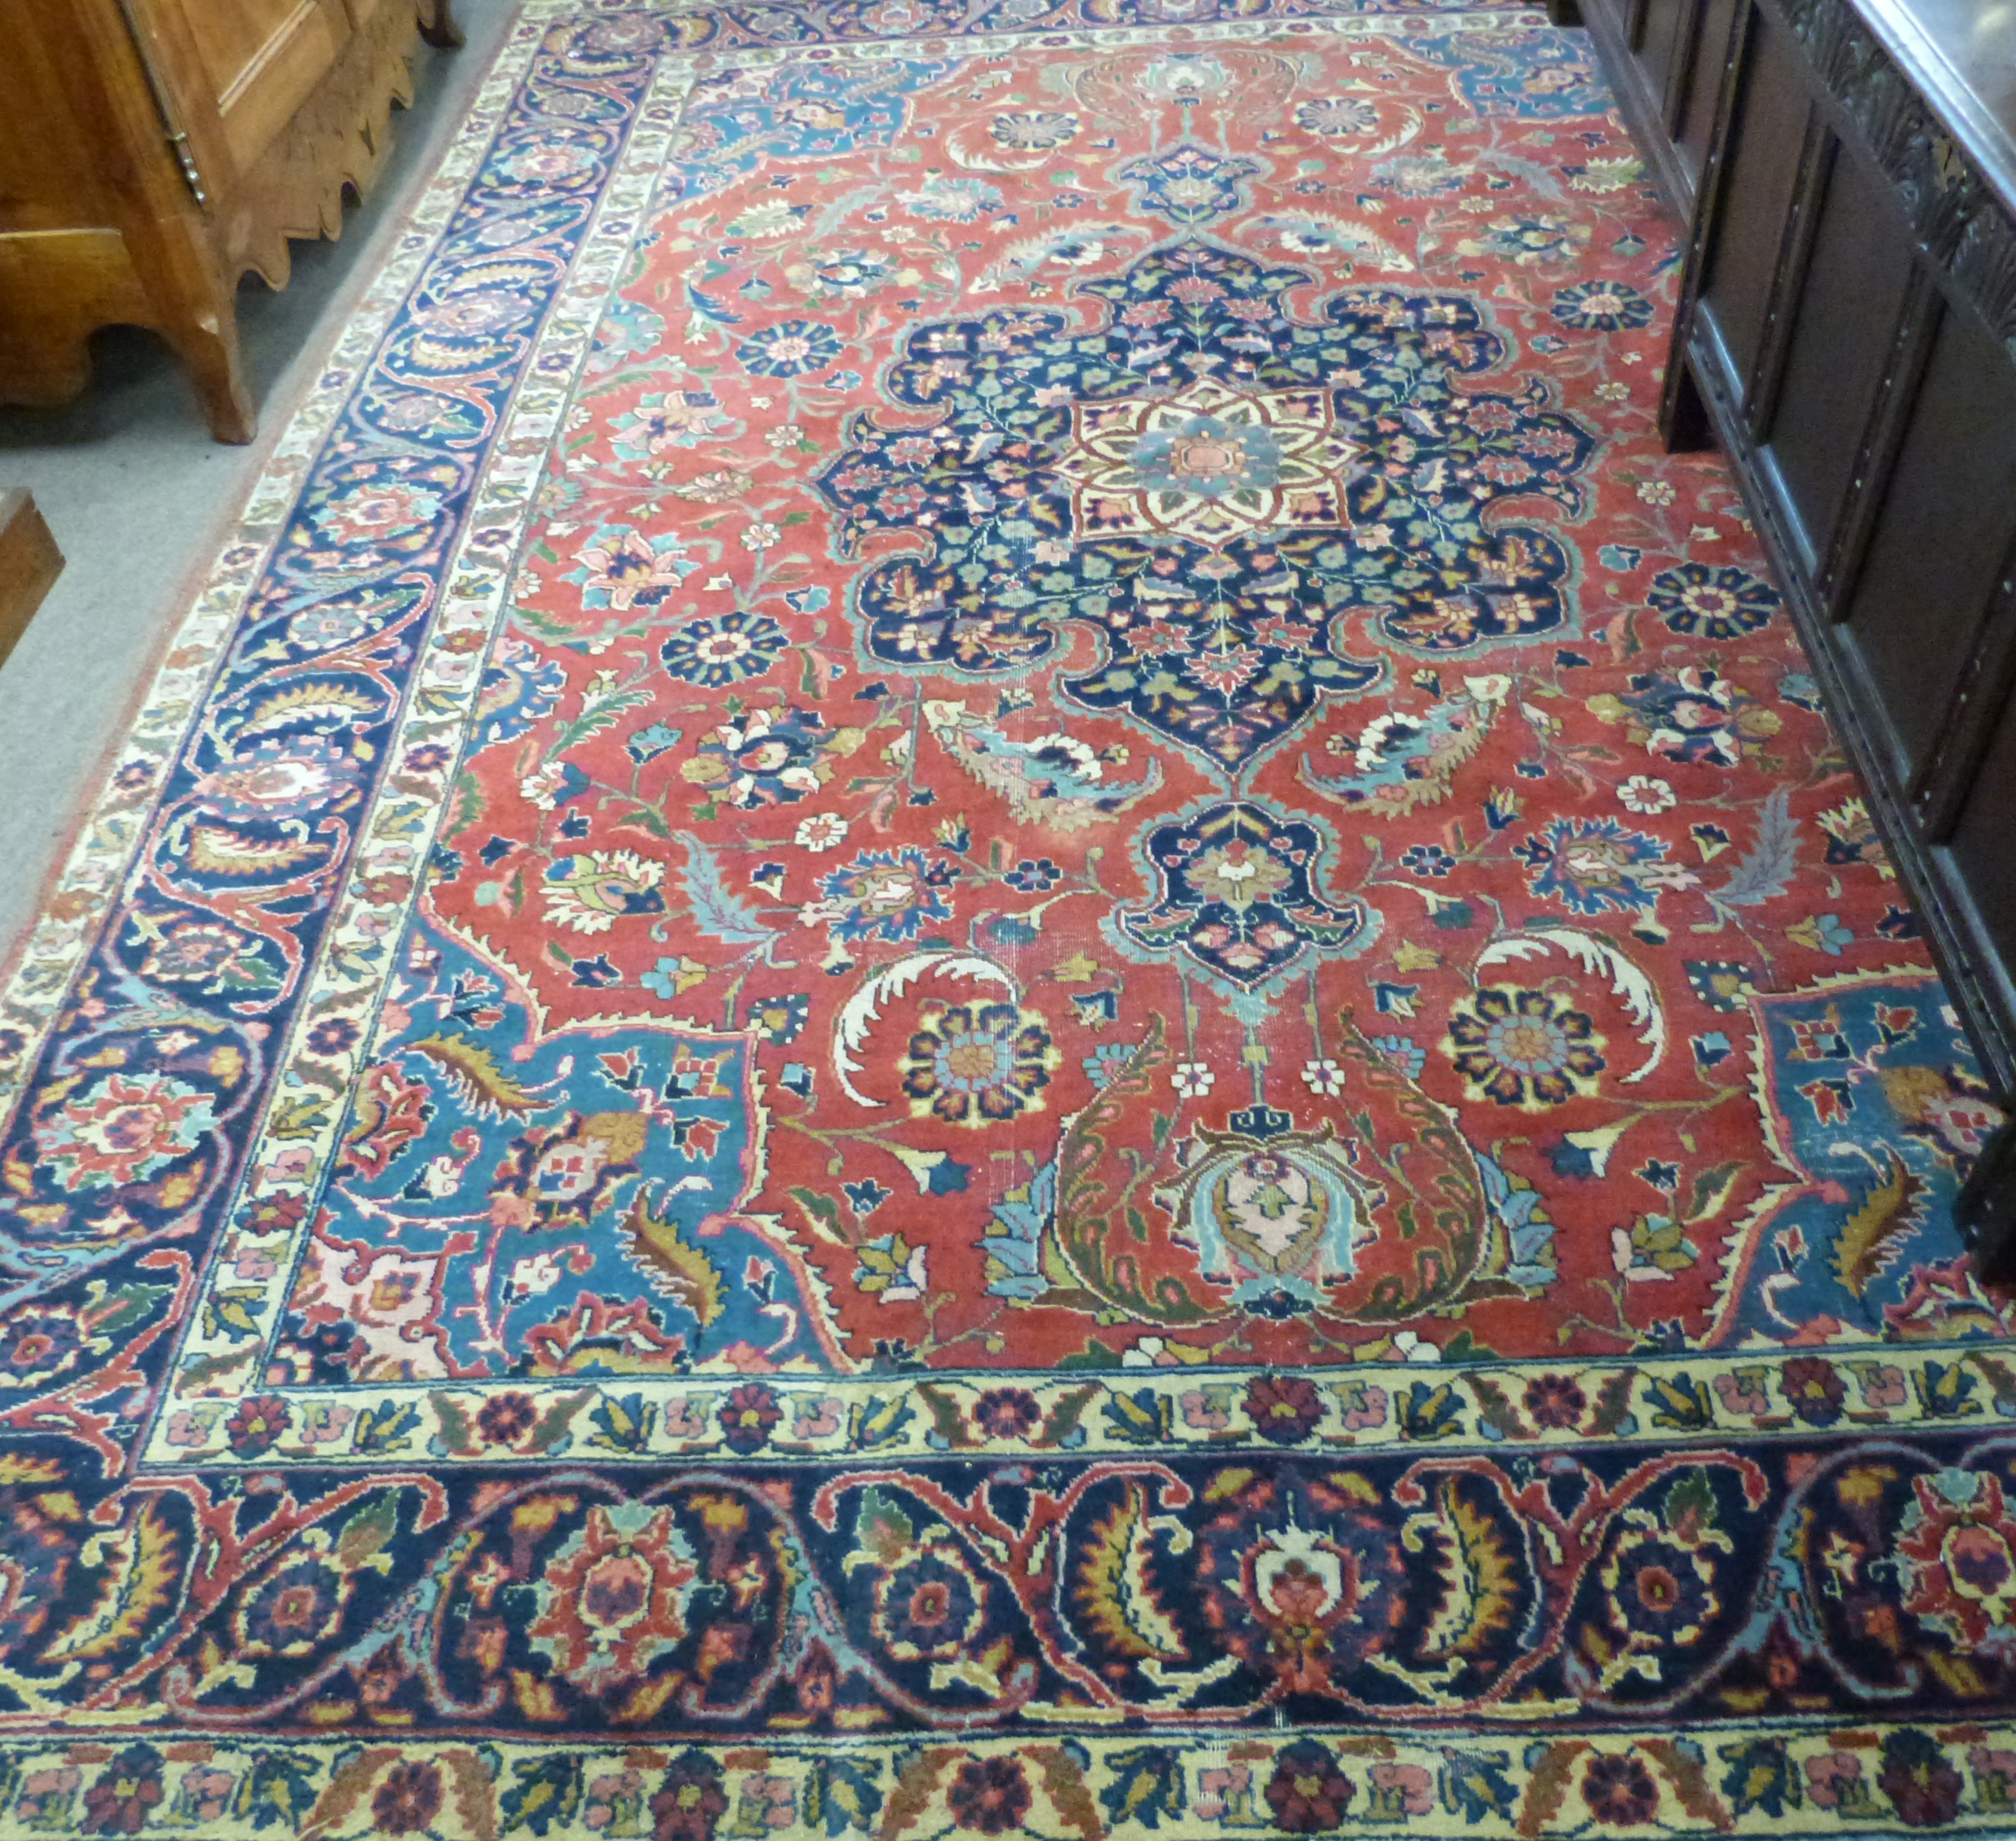 Mid-20th century Palestinian multi-coloured wool rug, circa 1945, red ground, single gulled - Image 2 of 2